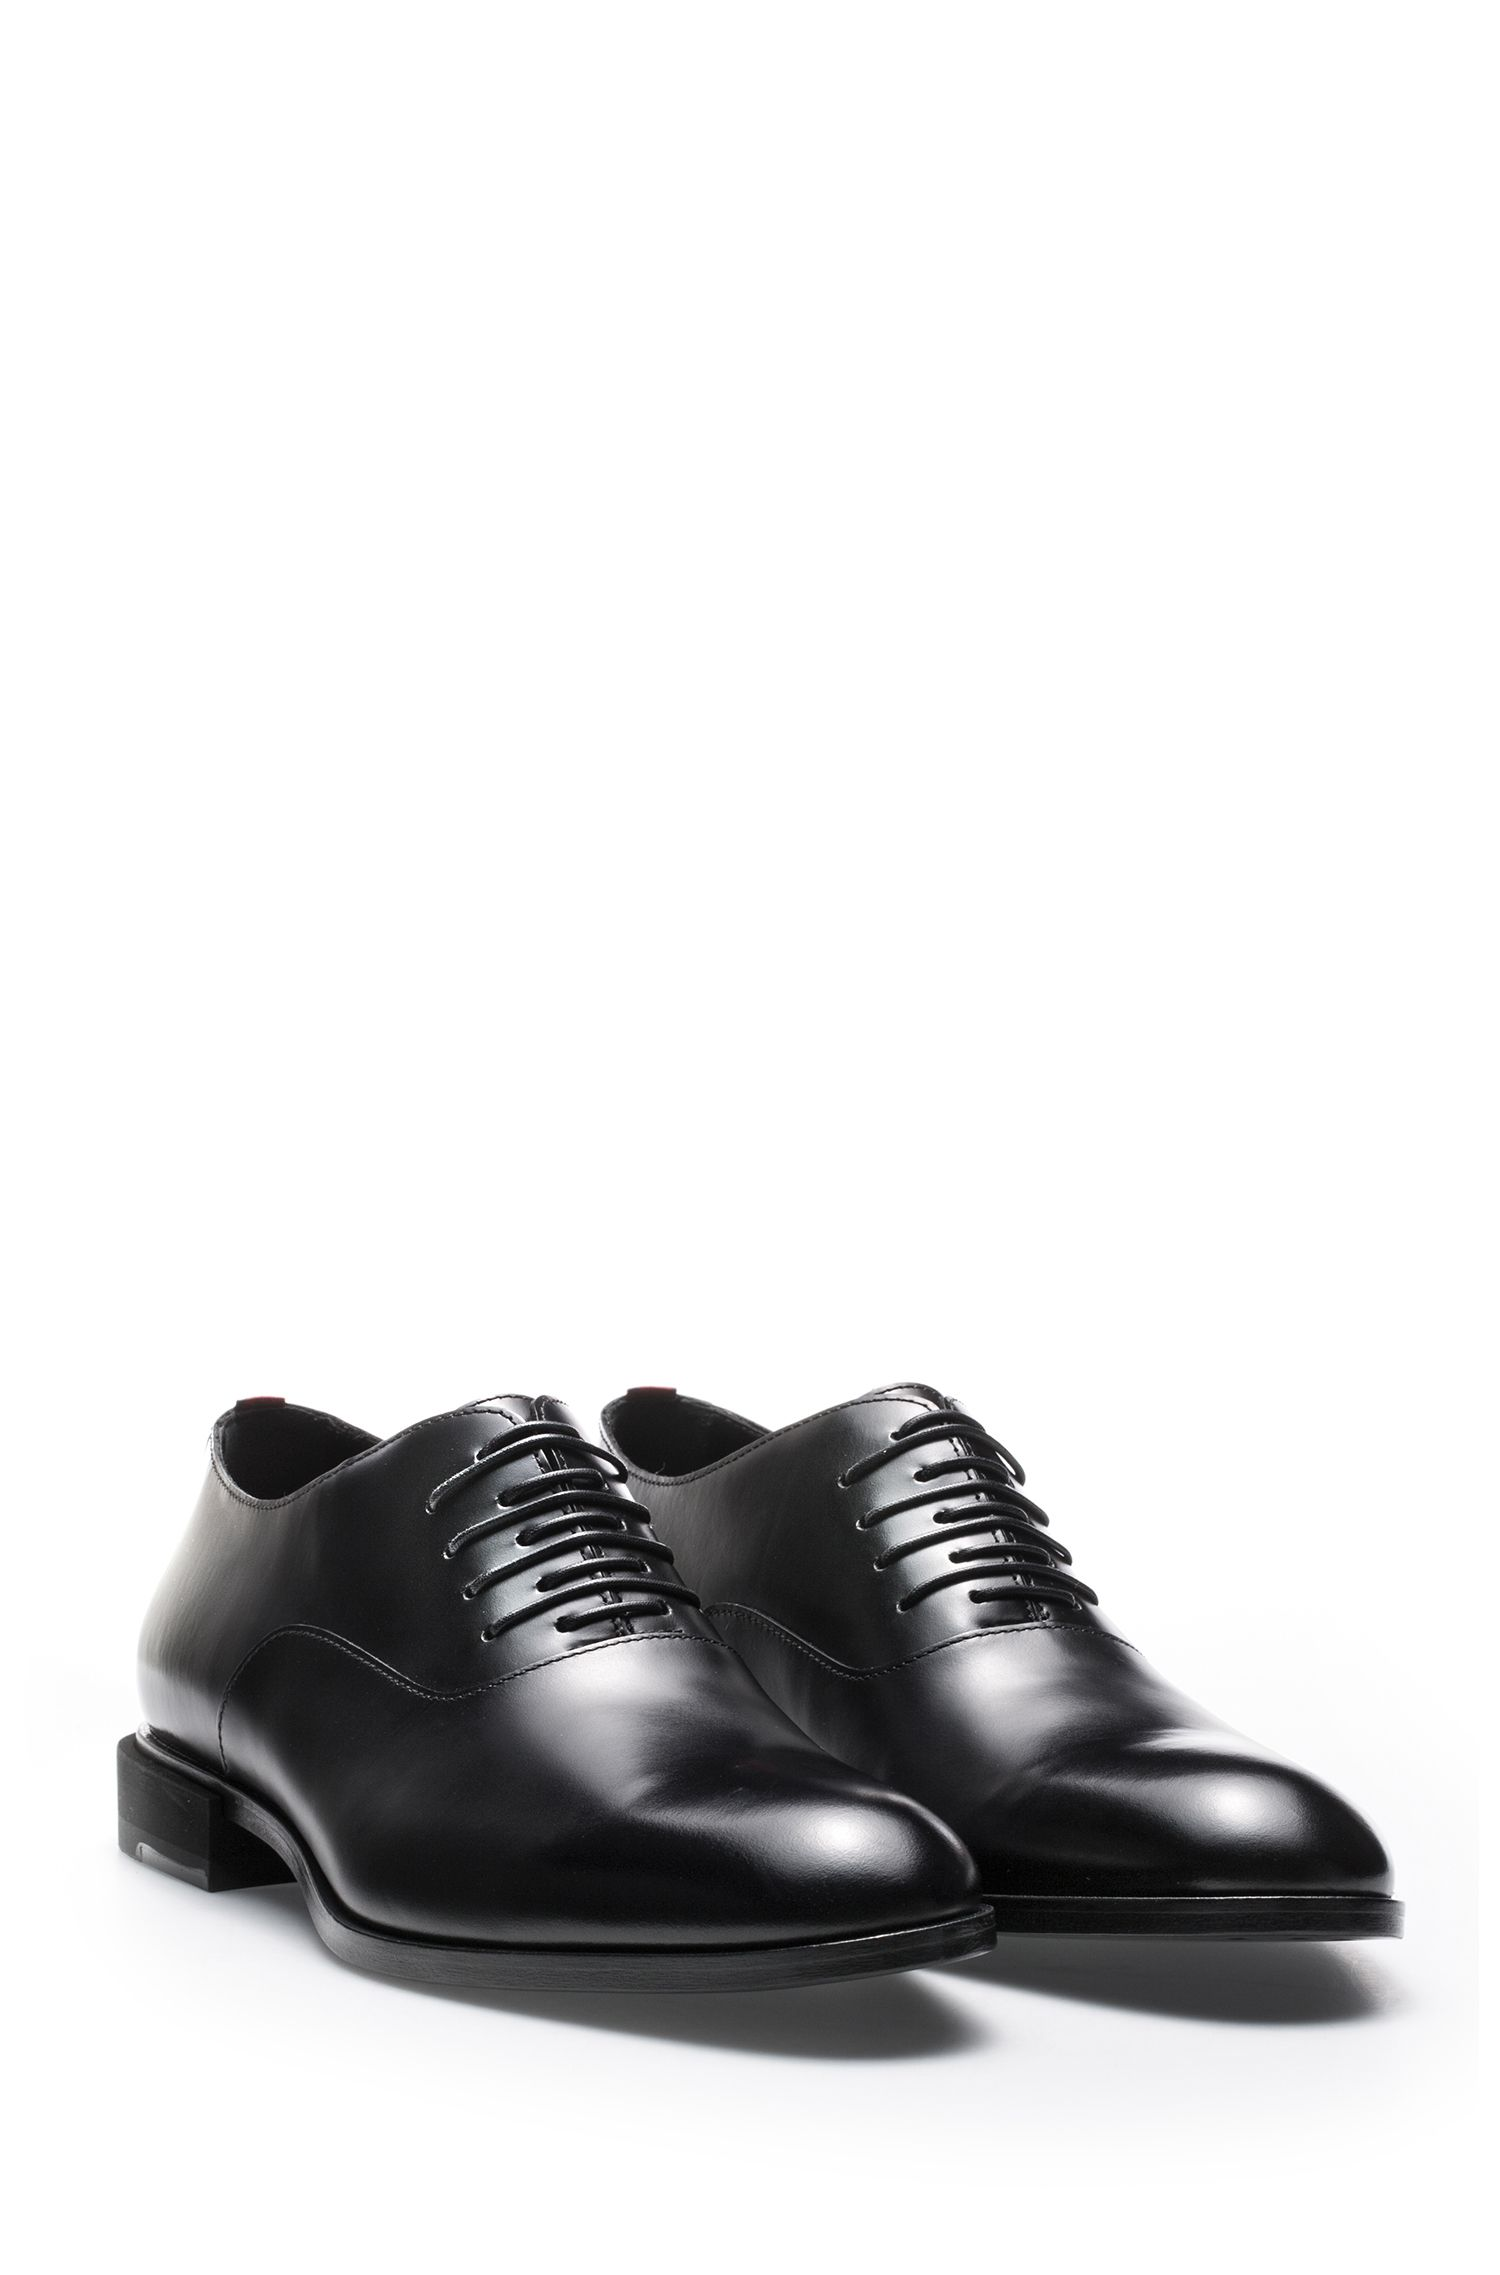 Scarpe Oxford in pelle di vitello con originale allacciatura, Nero